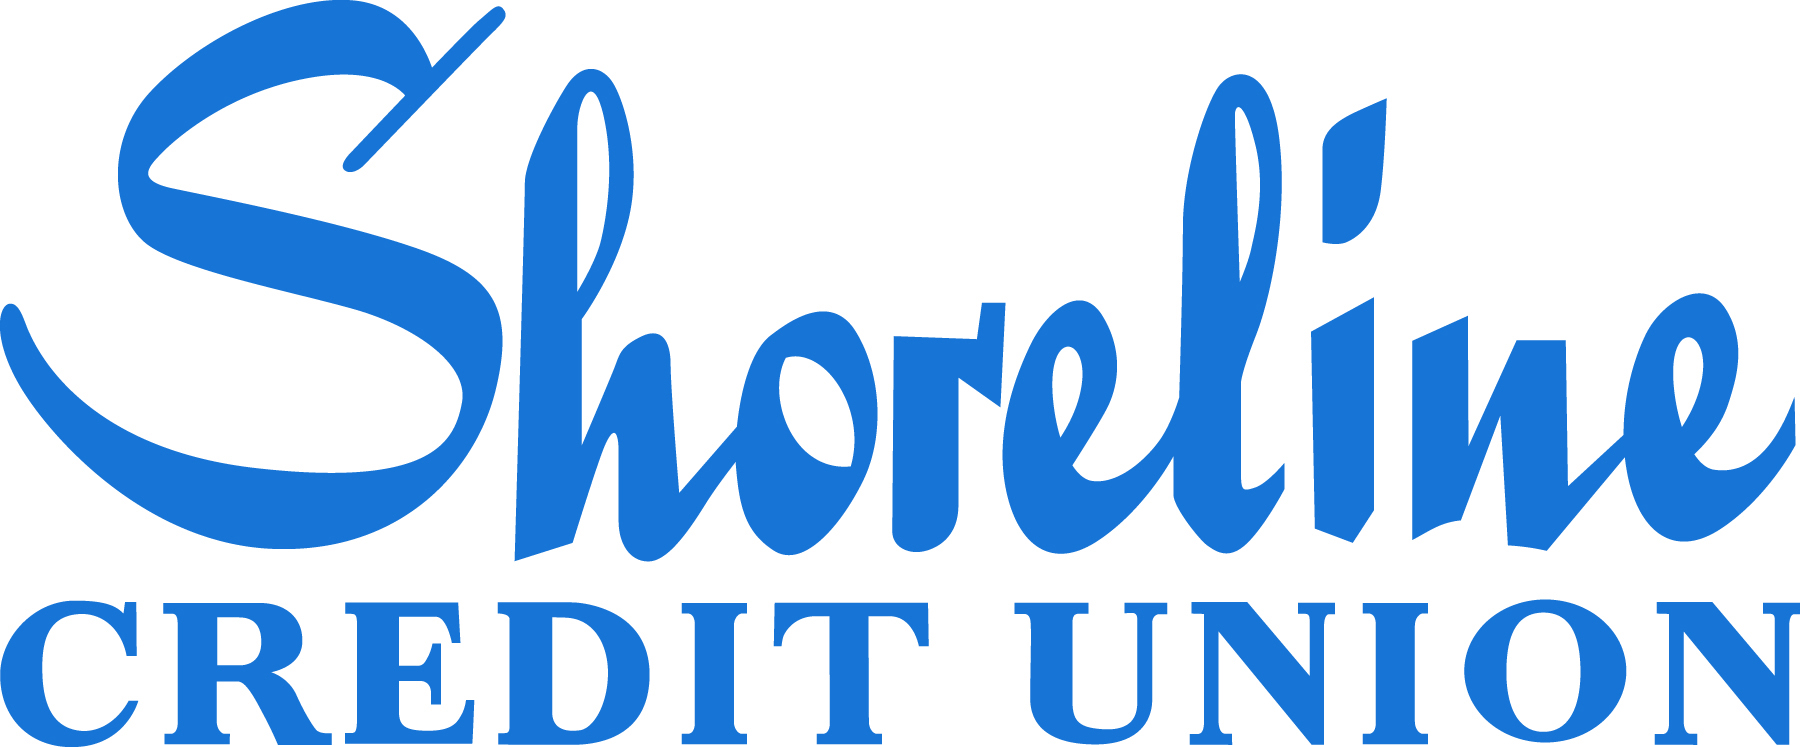 Shoreline Credit Union